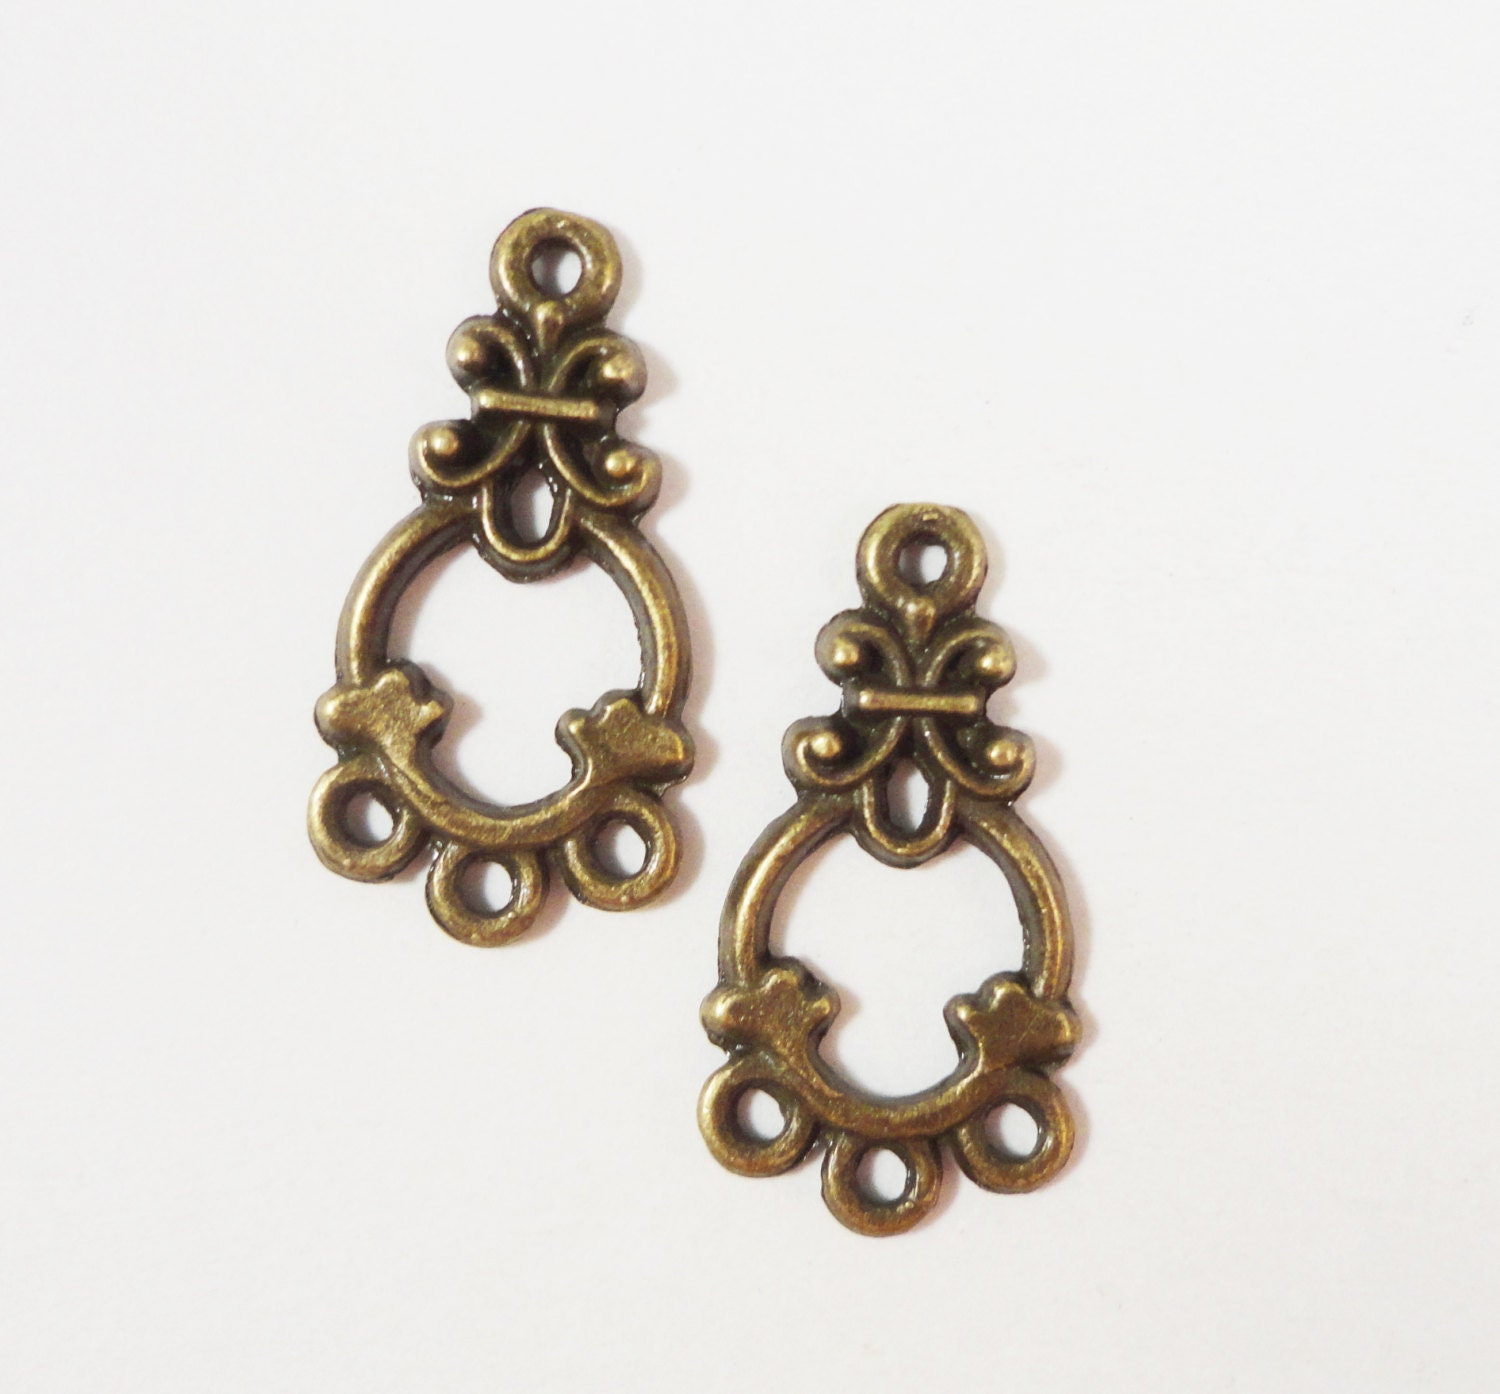 Chandelier earring findings 21x11mm antique brass metal bronze 1 365 shipping arubaitofo Image collections